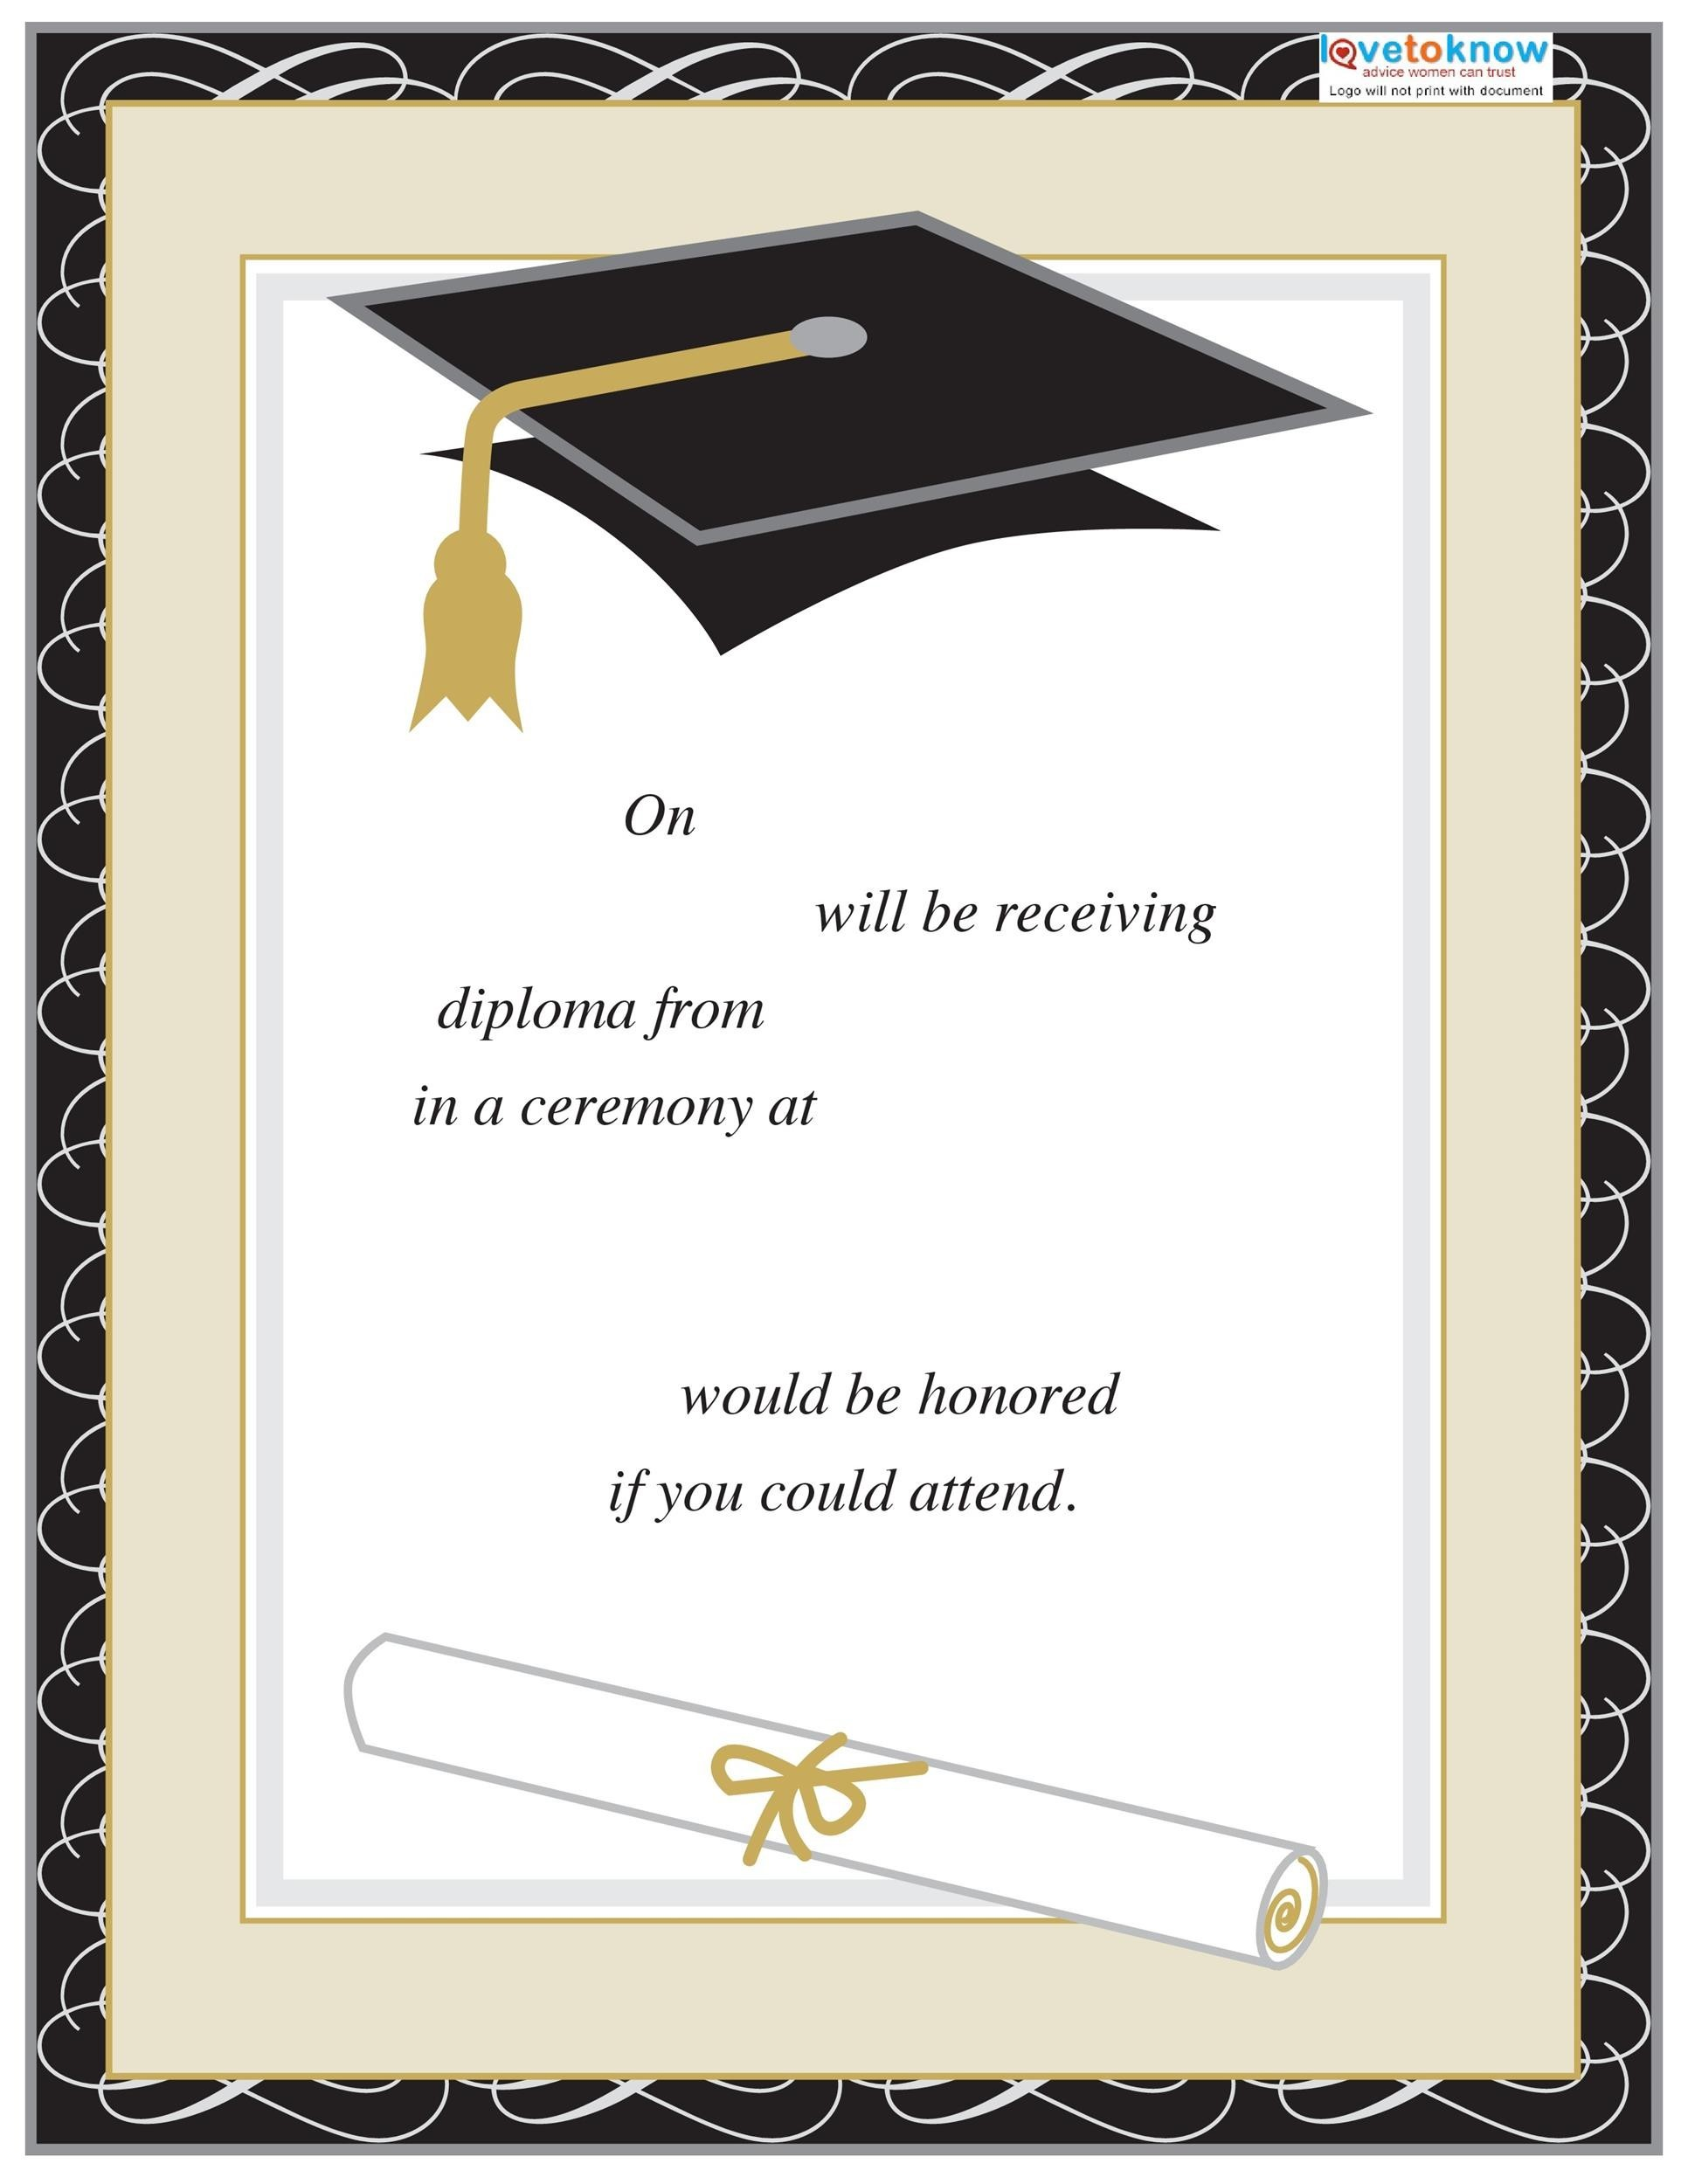 invitation for graduation ceremony - Ataum berglauf-verband com